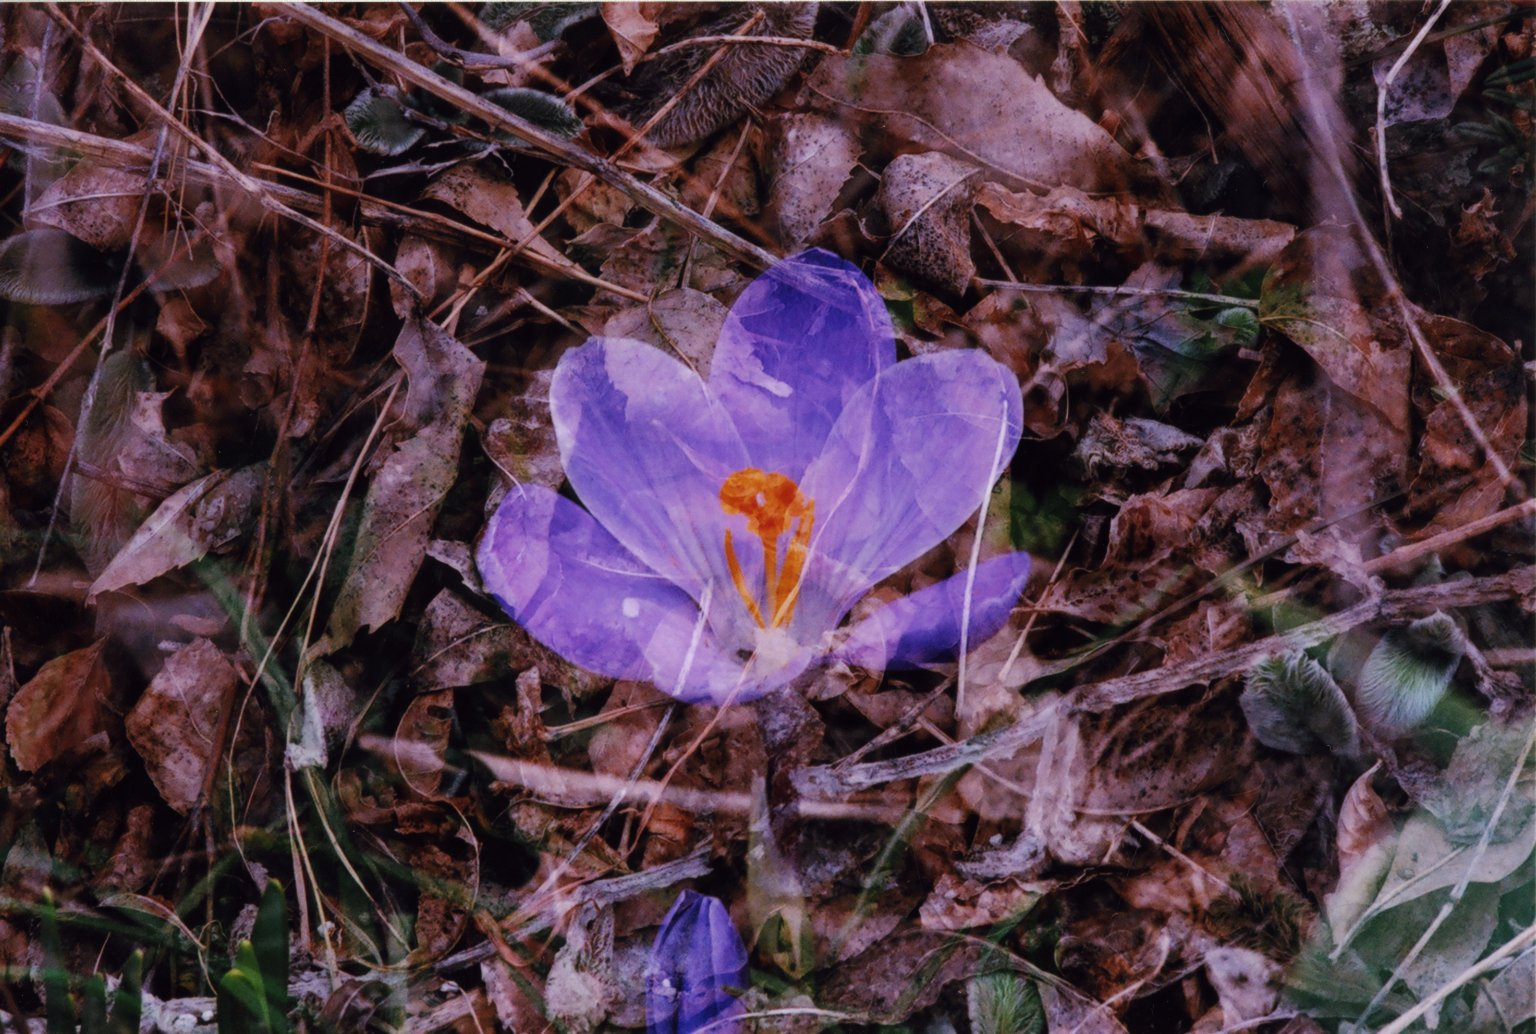 Double Exposure-Purple flower over brown leaves